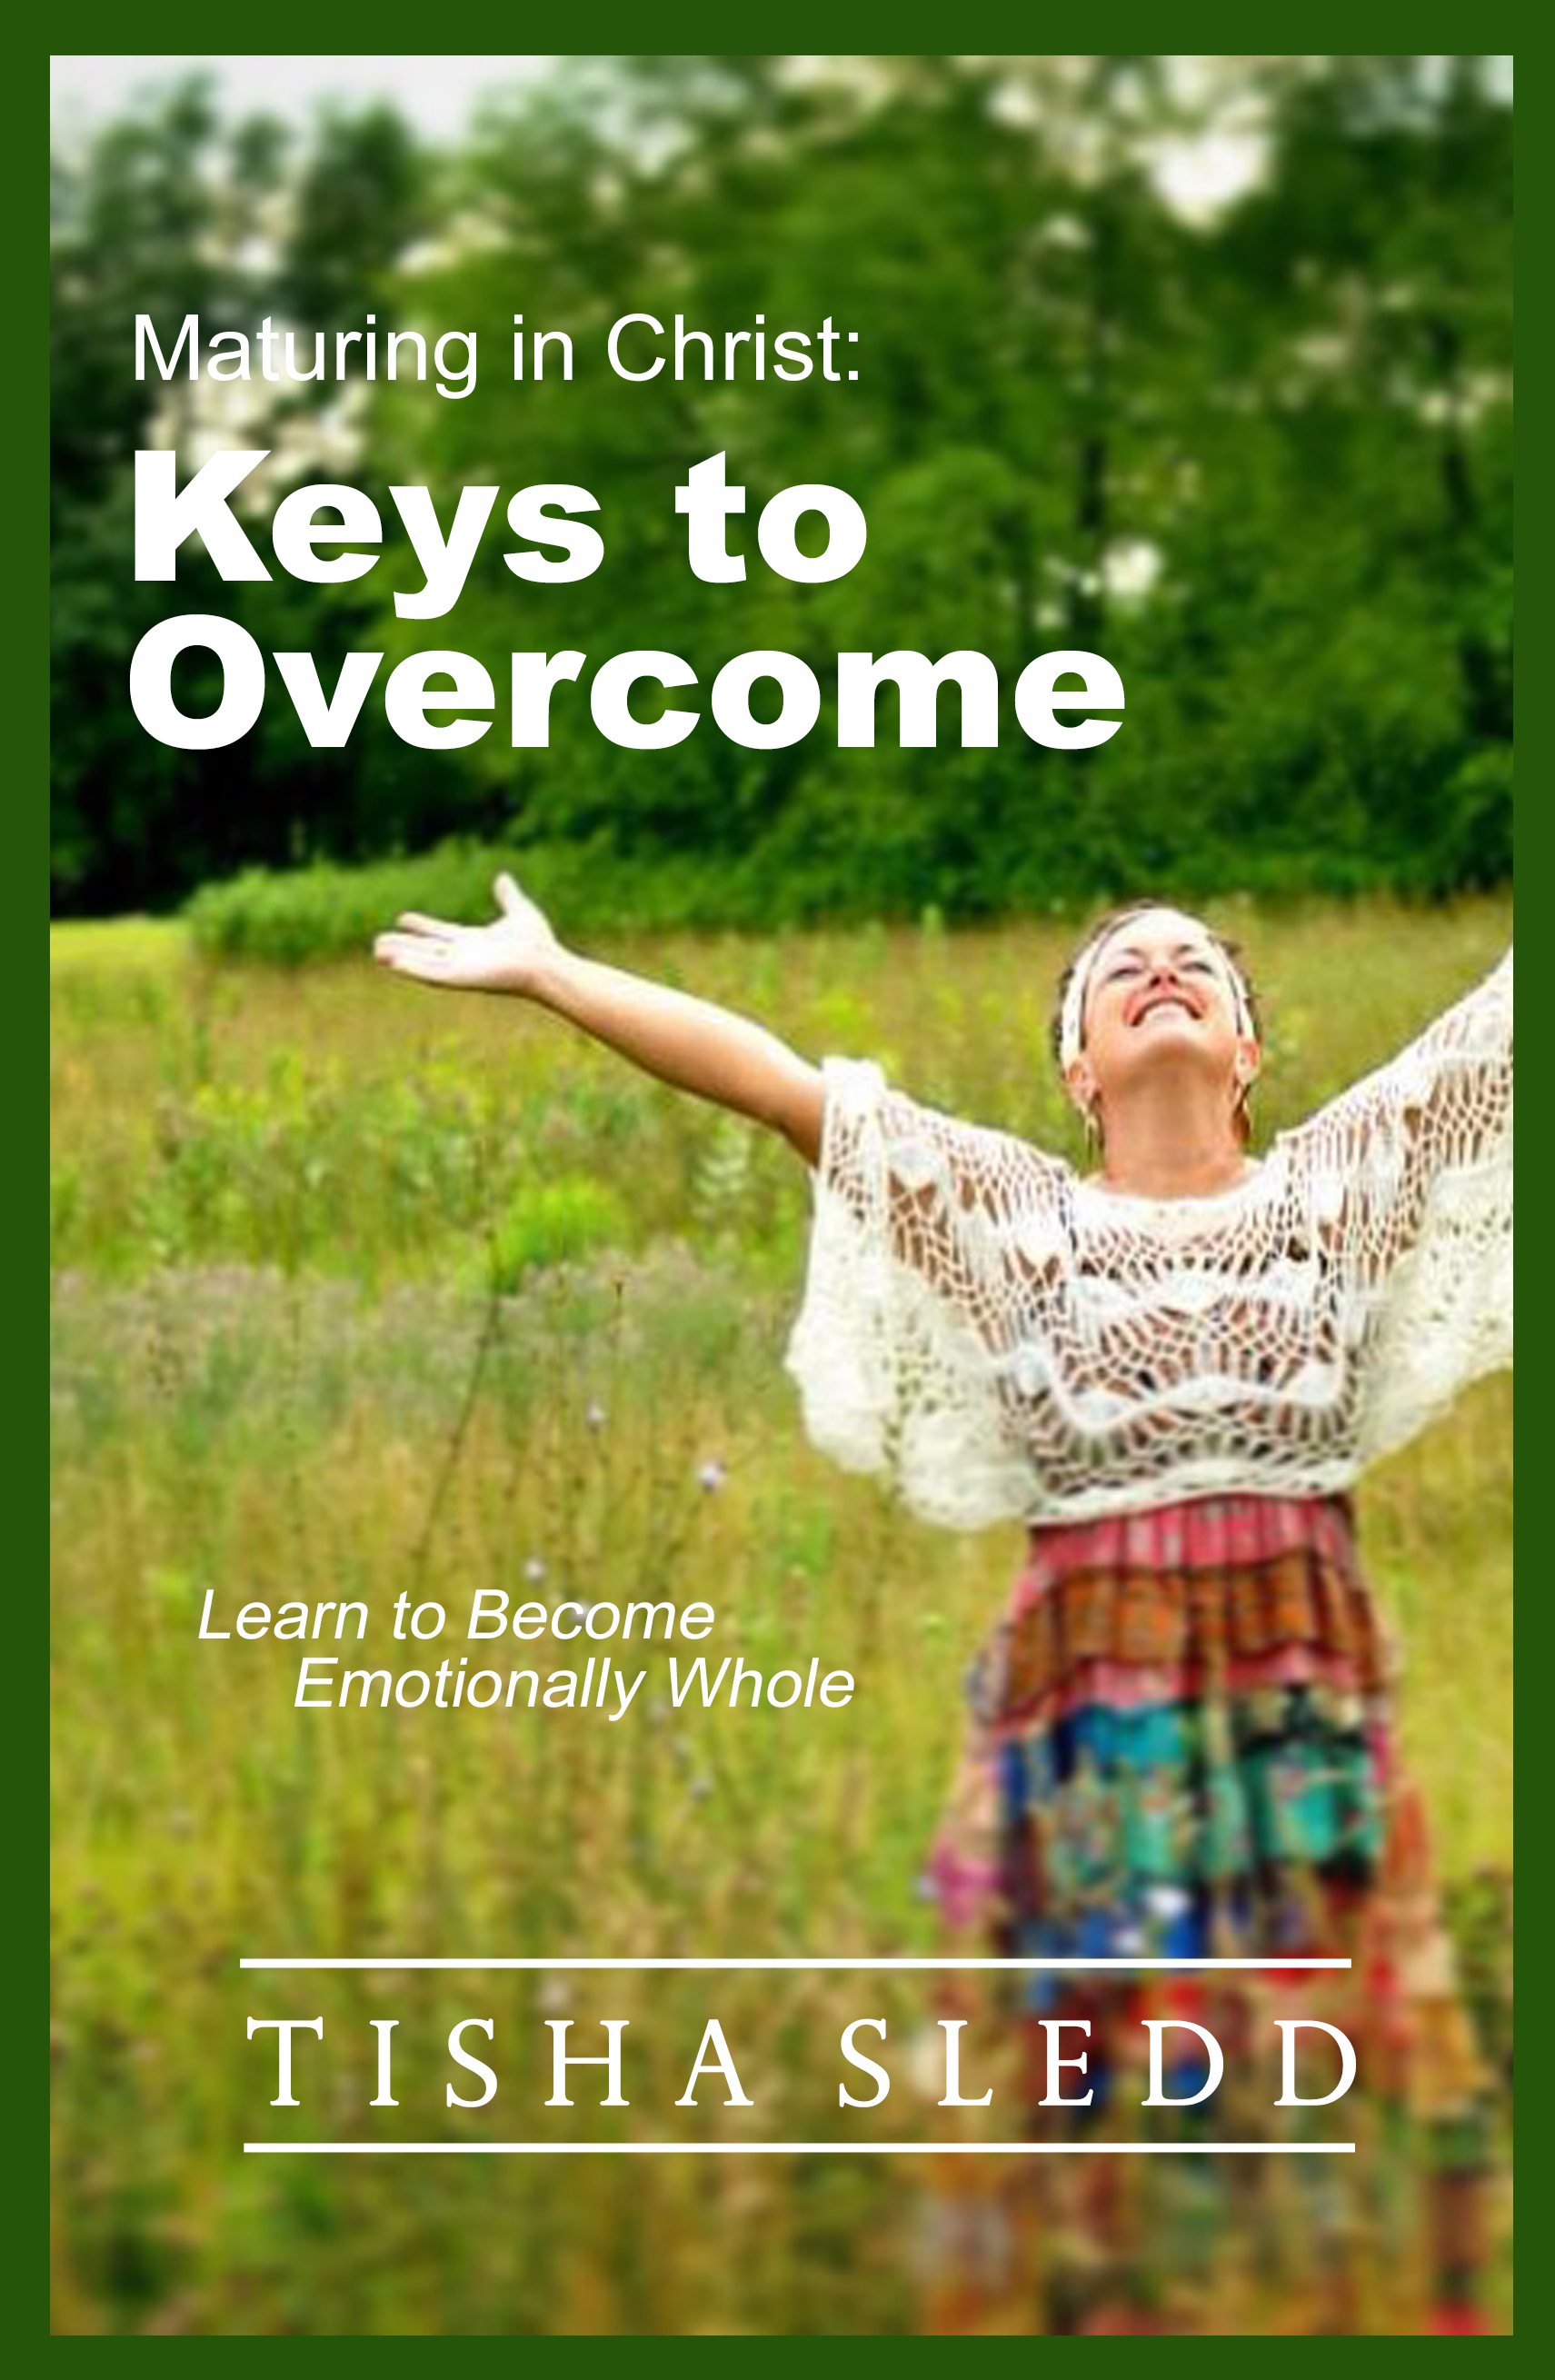 Maturing in christ:  Keys to overcome  - by Tisha SleddAre you tired of being stuck in a cycle? Are you ready to climb the mountain of maturity in the Kingdom of God? Tisha Sledd provides some specific steps you can take to remove certain strongholds the enemy uses that keep you in the cycle of immaturity. Learn important steps about overcoming fear, bitterness, religious spirits, powerlessness, pride and more. These biblically based keys will help to repair your heart emotionally. Link: http://a.co/gKFVB14